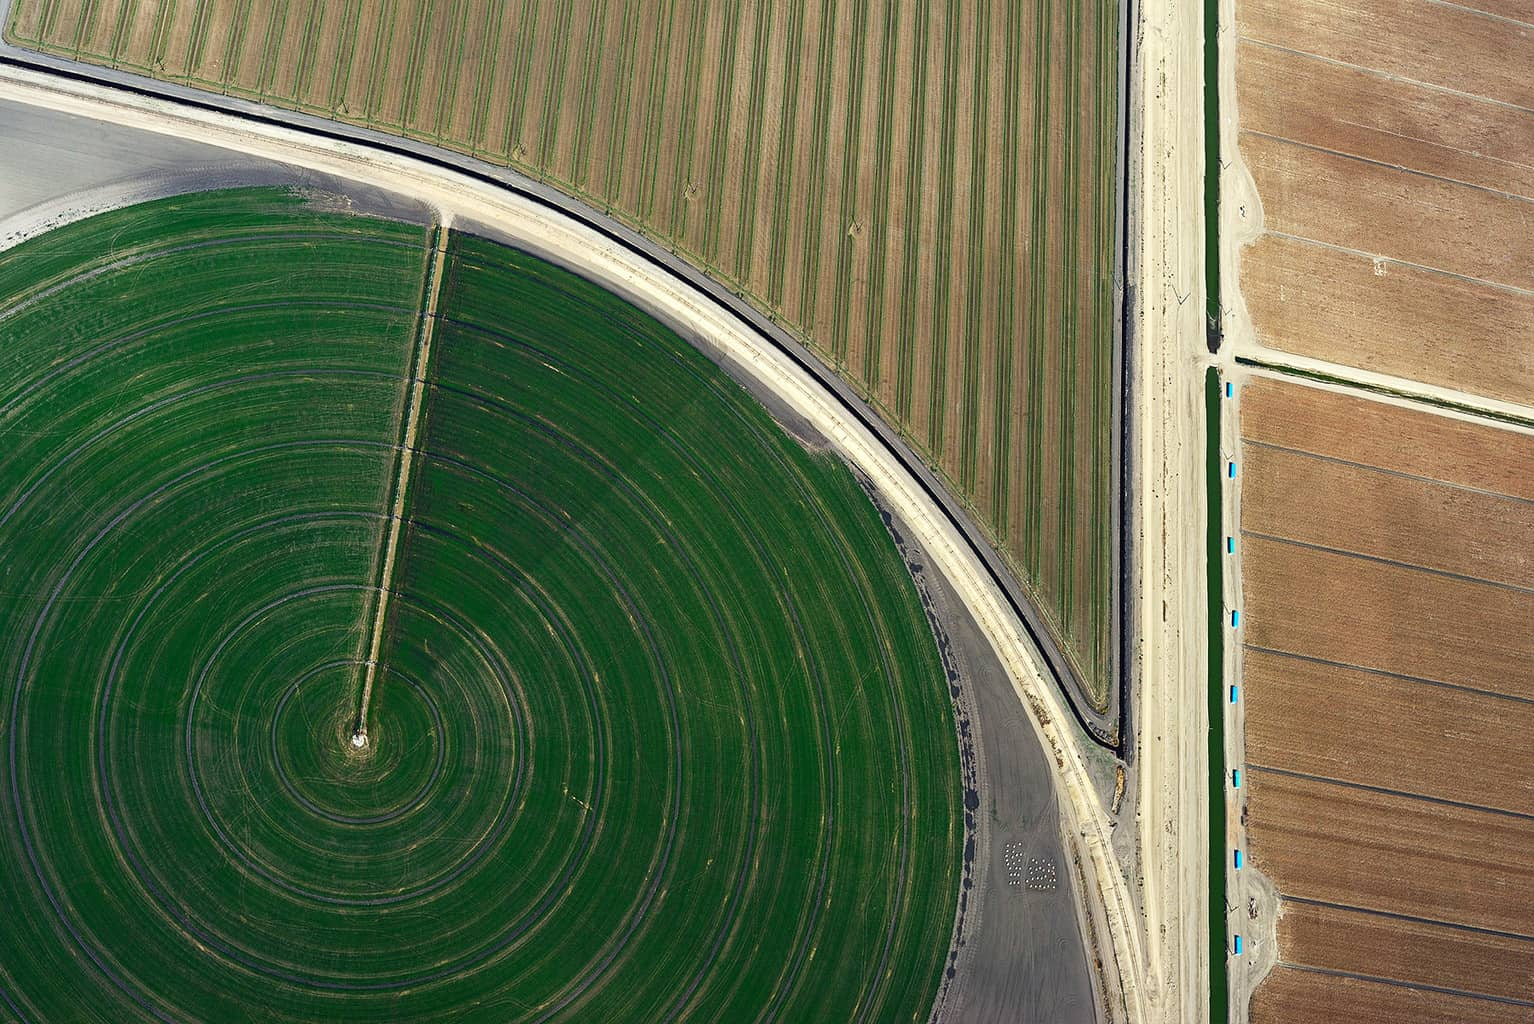 Agriculture #010, Mulholland's Gold, 2011-2014